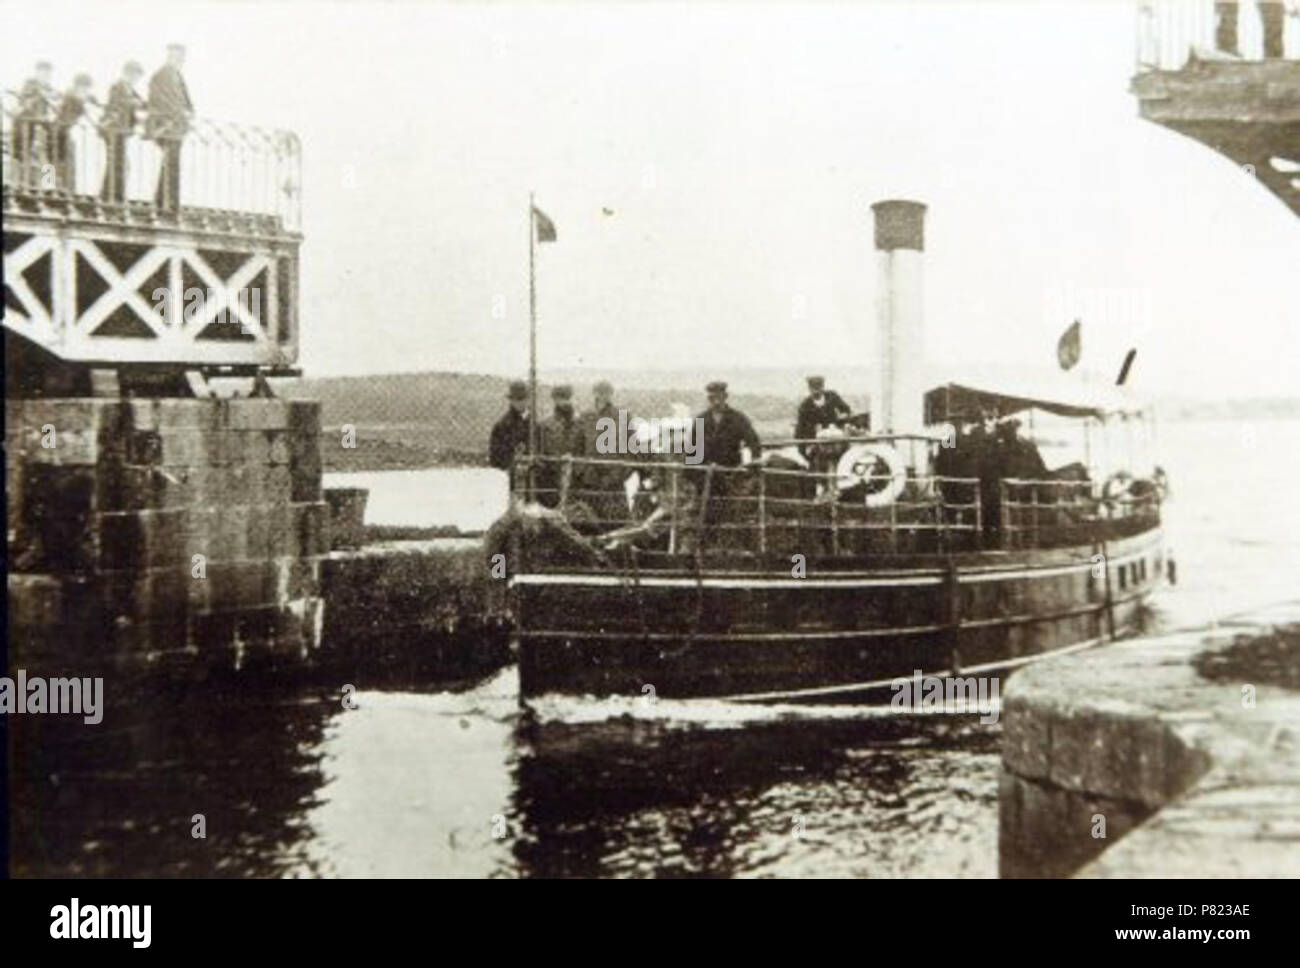 English: Steamer belonging to Bernard Forbes, 8th Earl of Granard, passing through Lanesborough Bridge on the River Shannon, Ireland in 1900 . 1900 240 Steamer belonging to Bernard Forbes, 8th Earl of Granard, passing through Lanesborough Bridge in 1900 - Stock Image